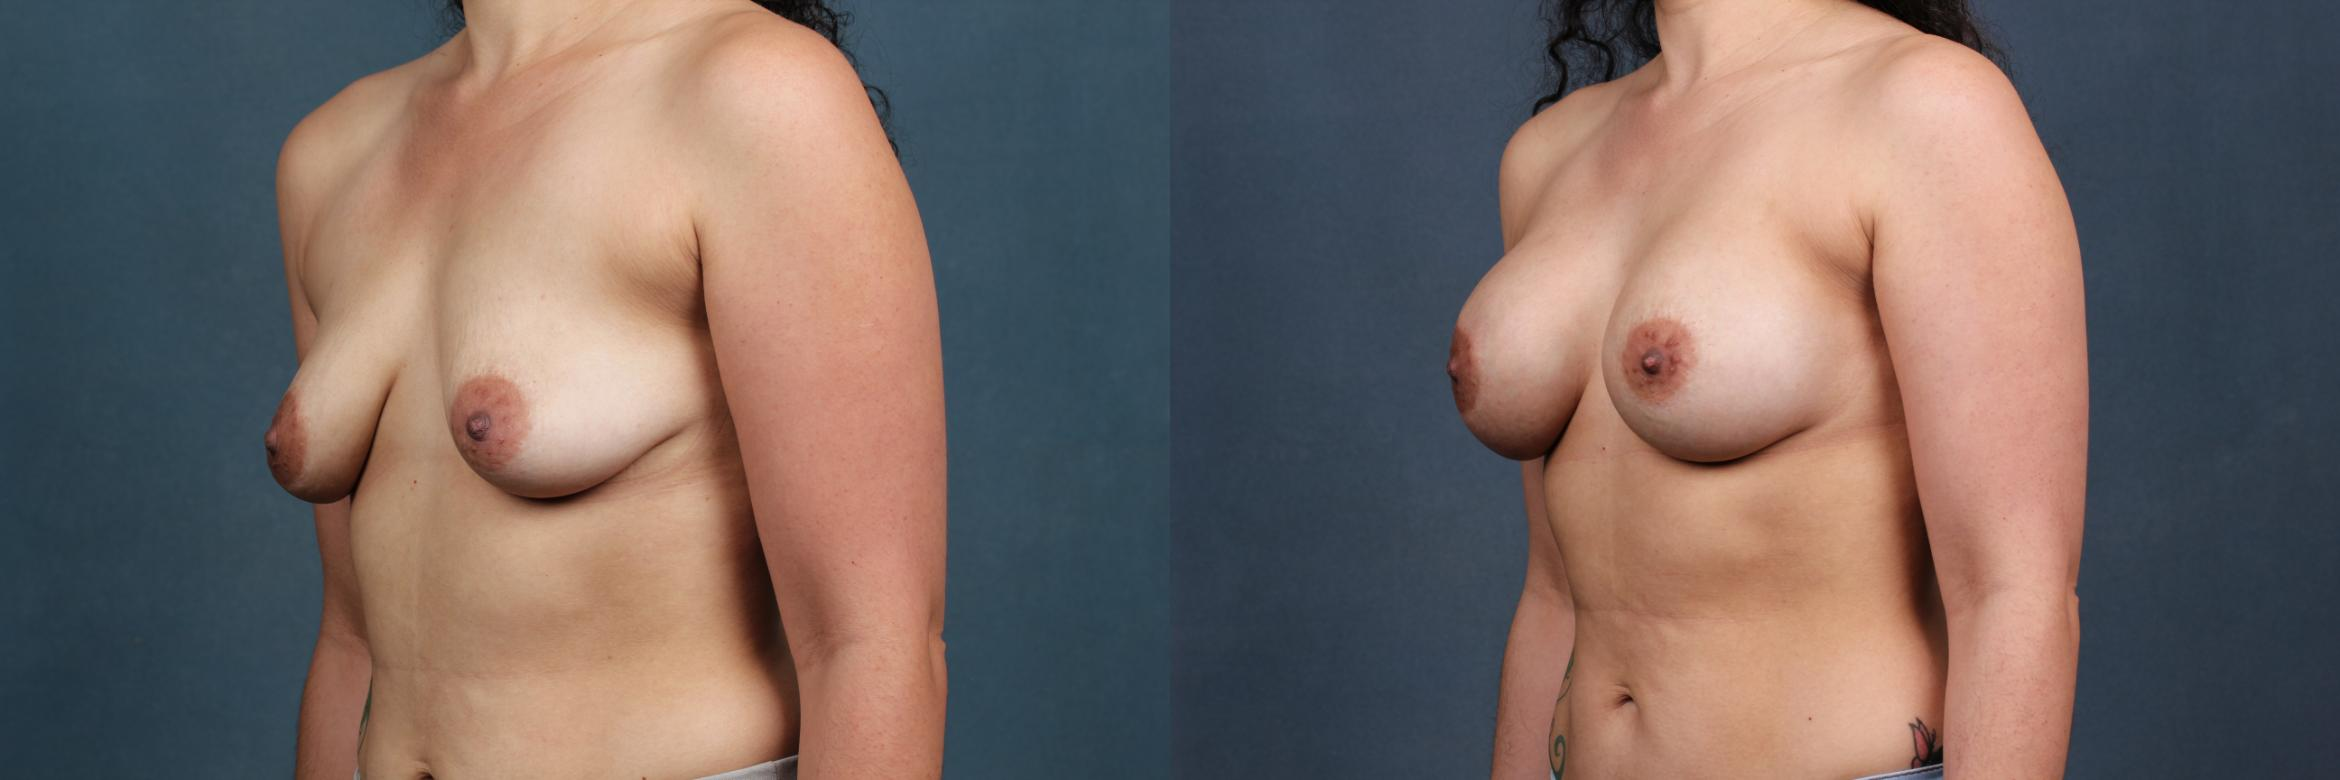 Enlargement - Silicone Case 387 Before & After View #2 | Louisville, KY | CaloAesthetics® Plastic Surgery Center